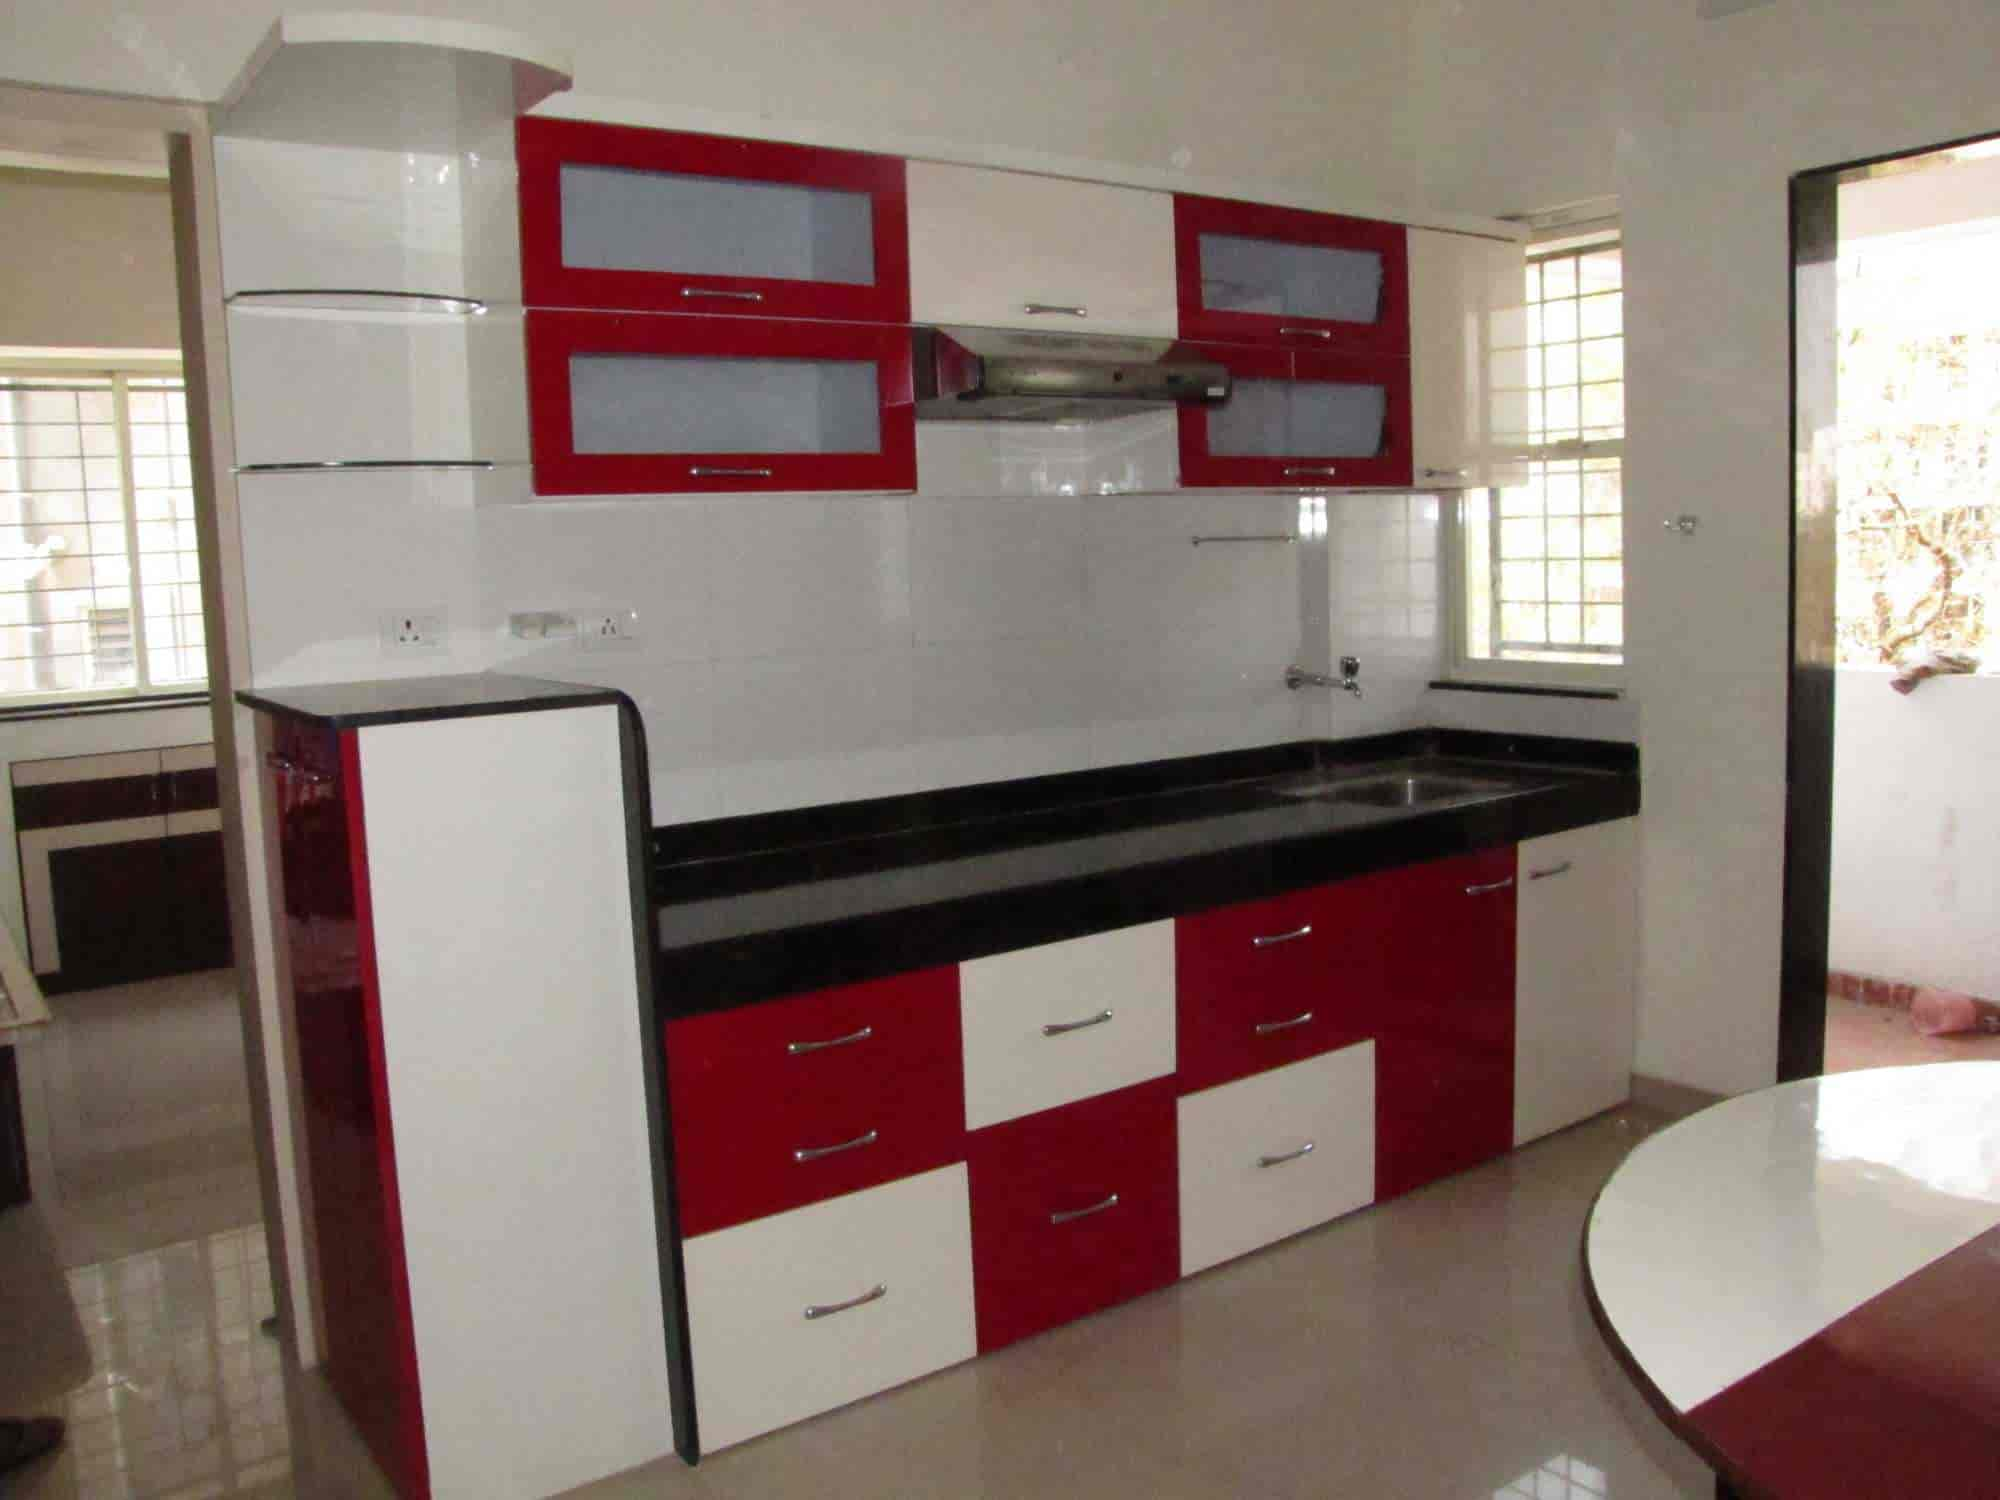 Delicieux ... Modular Kitchen View   Mona Furniture And Kitchen Trolley Photos,  Warje, Pune   Furniture ...